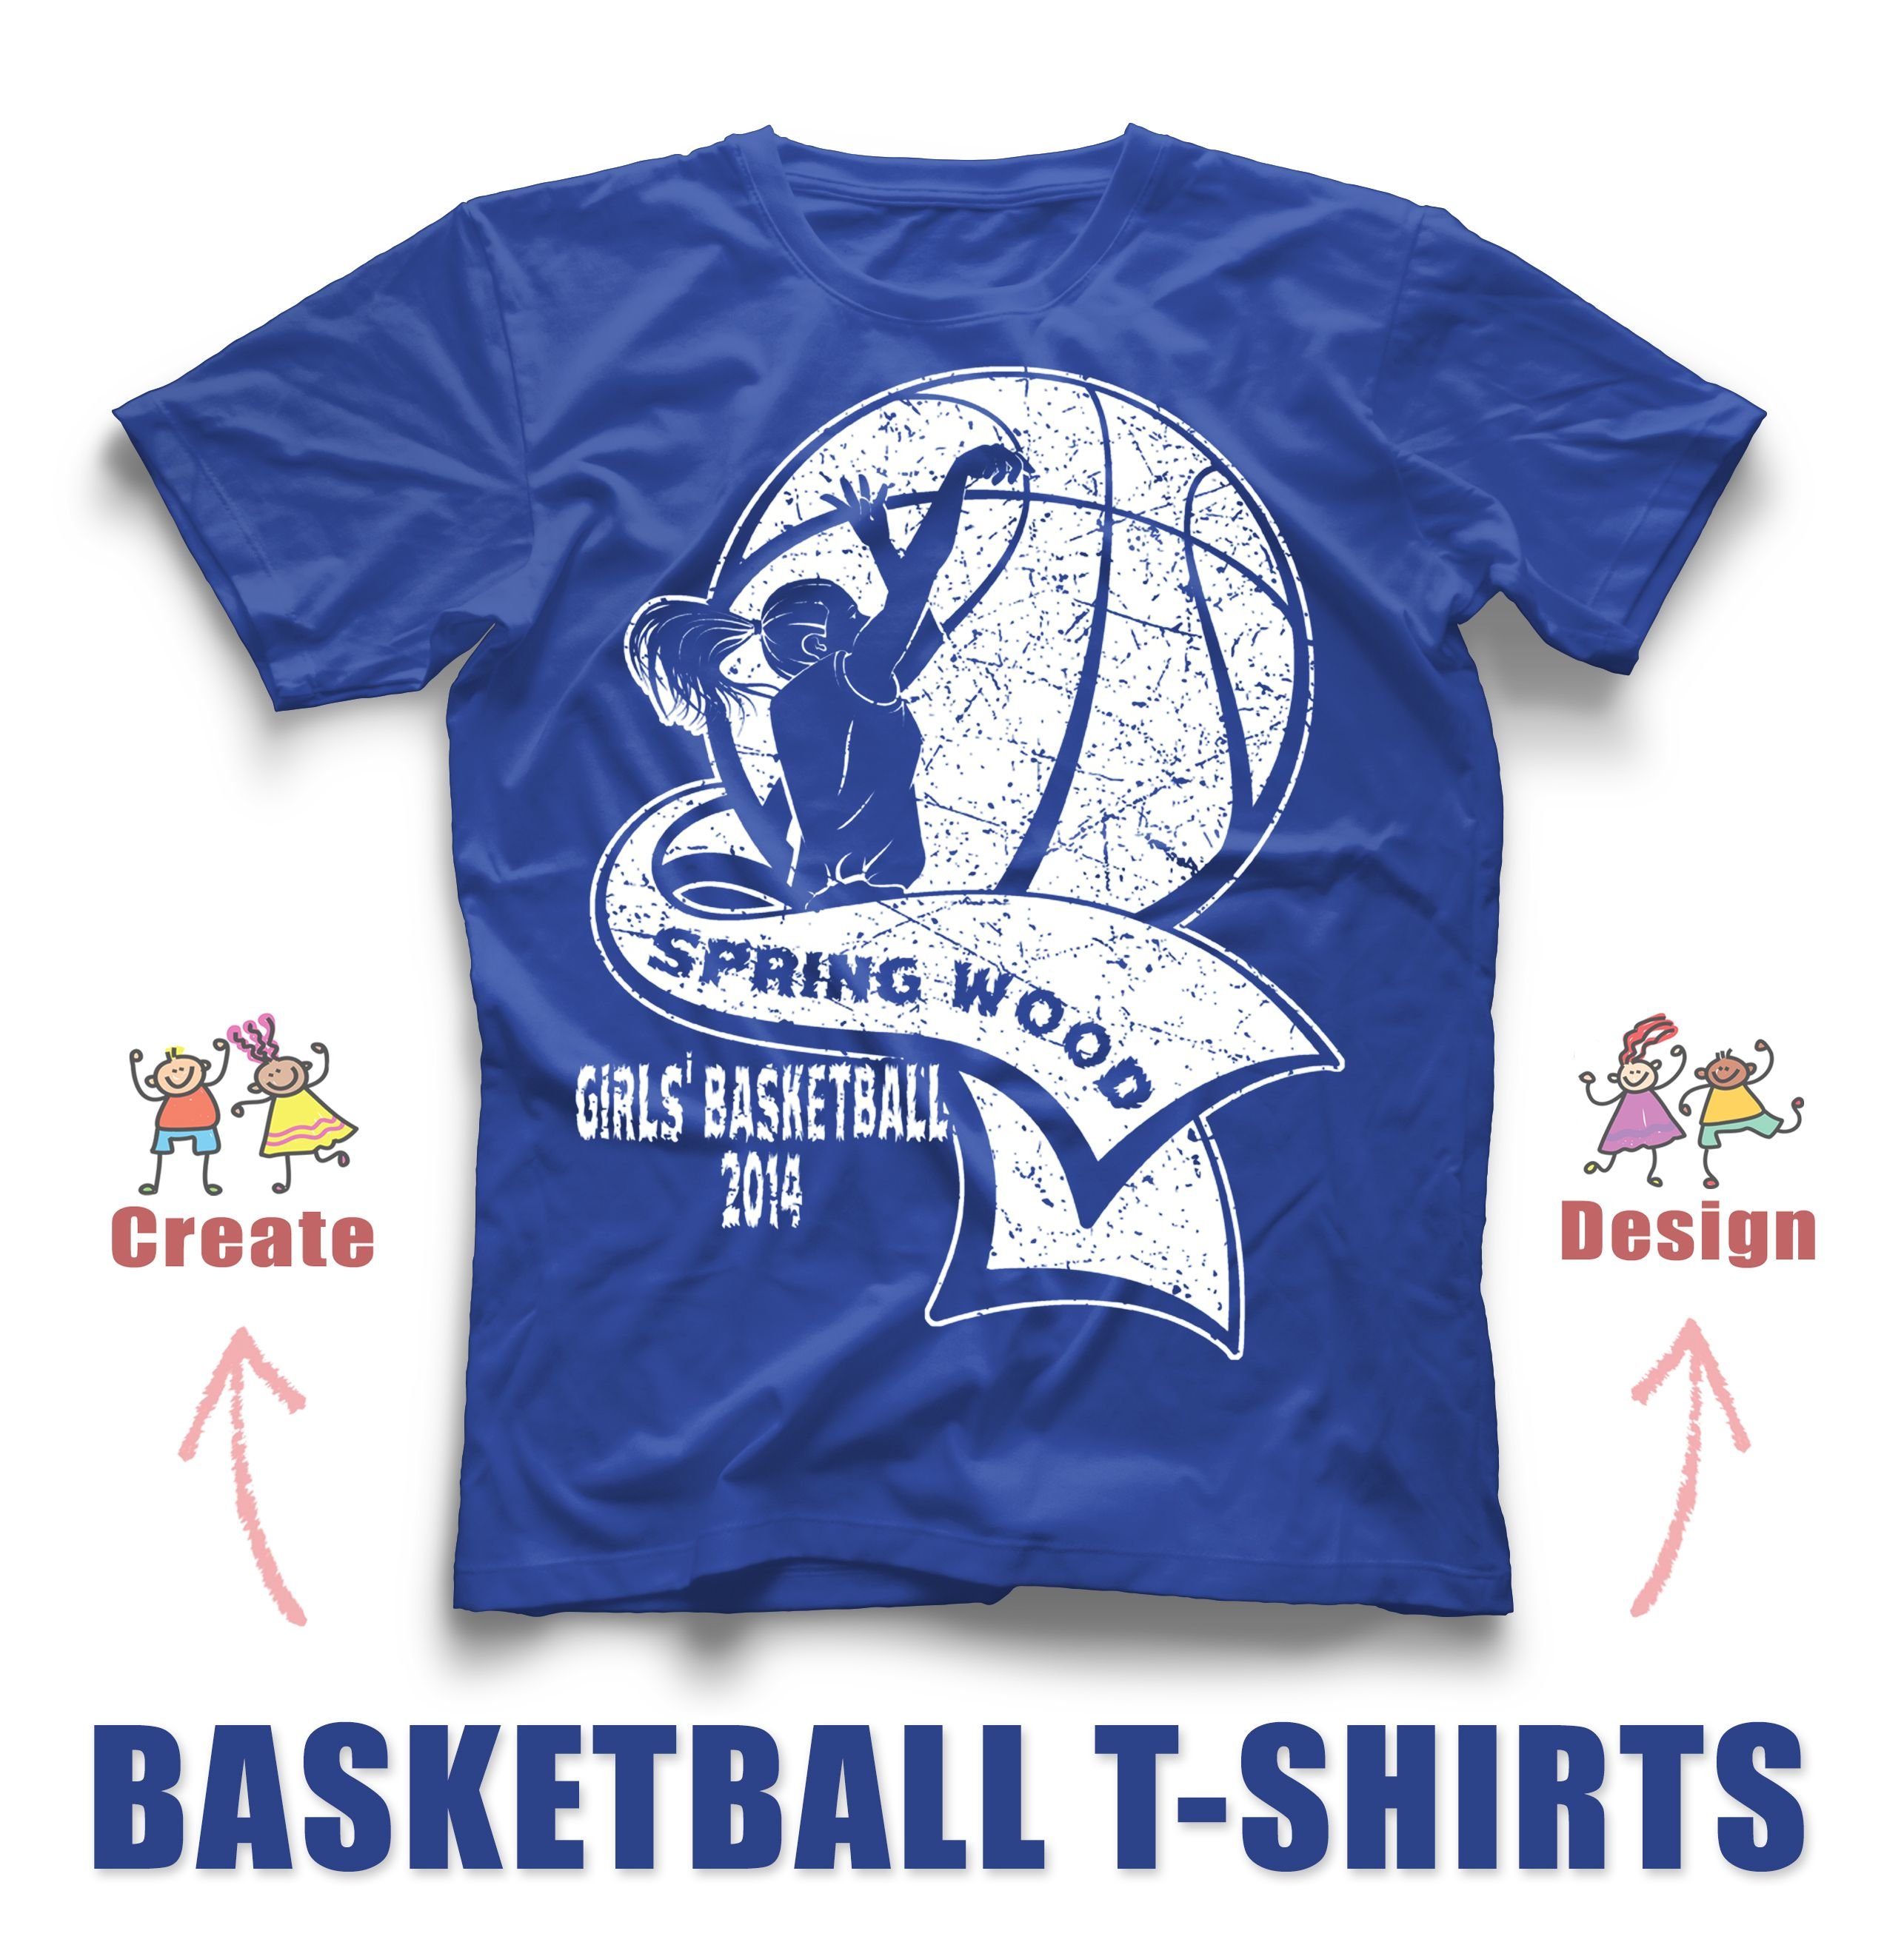 Girl S Basketball Custom T Shirt Design Awesome Design You Can Upload Your Design To Our Eas T Shirt Design Template Basketball T Shirt Designs Team T Shirts